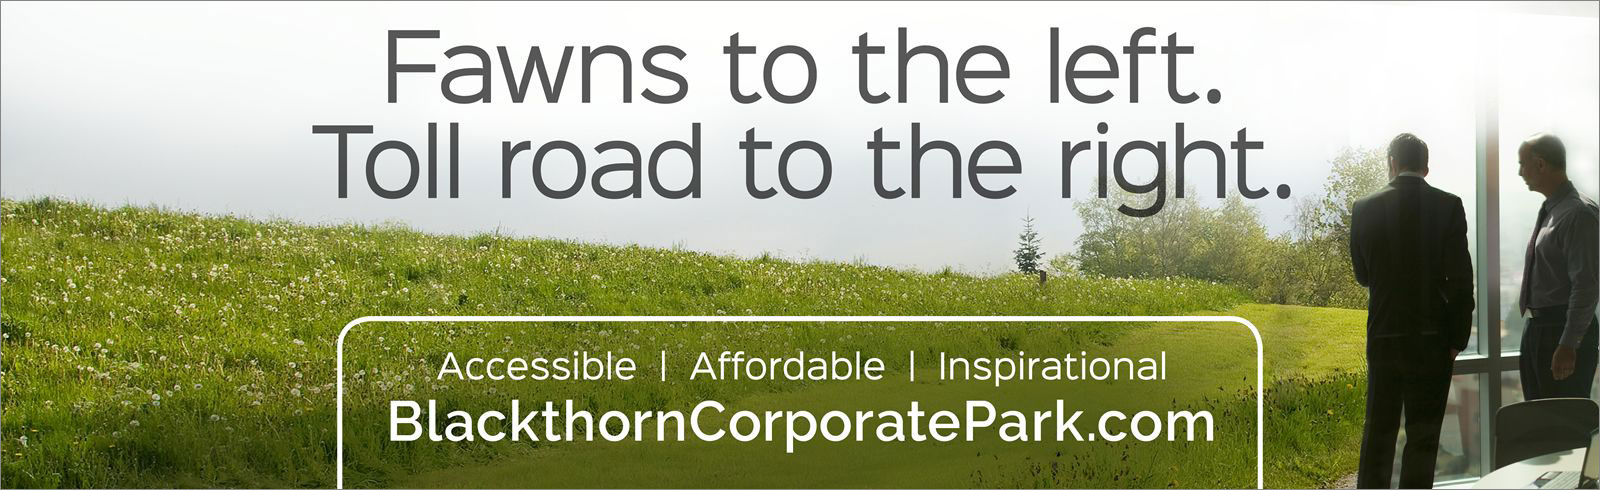 Blackthorn Corporate Park <strong>Outdoor Campaign</strong>